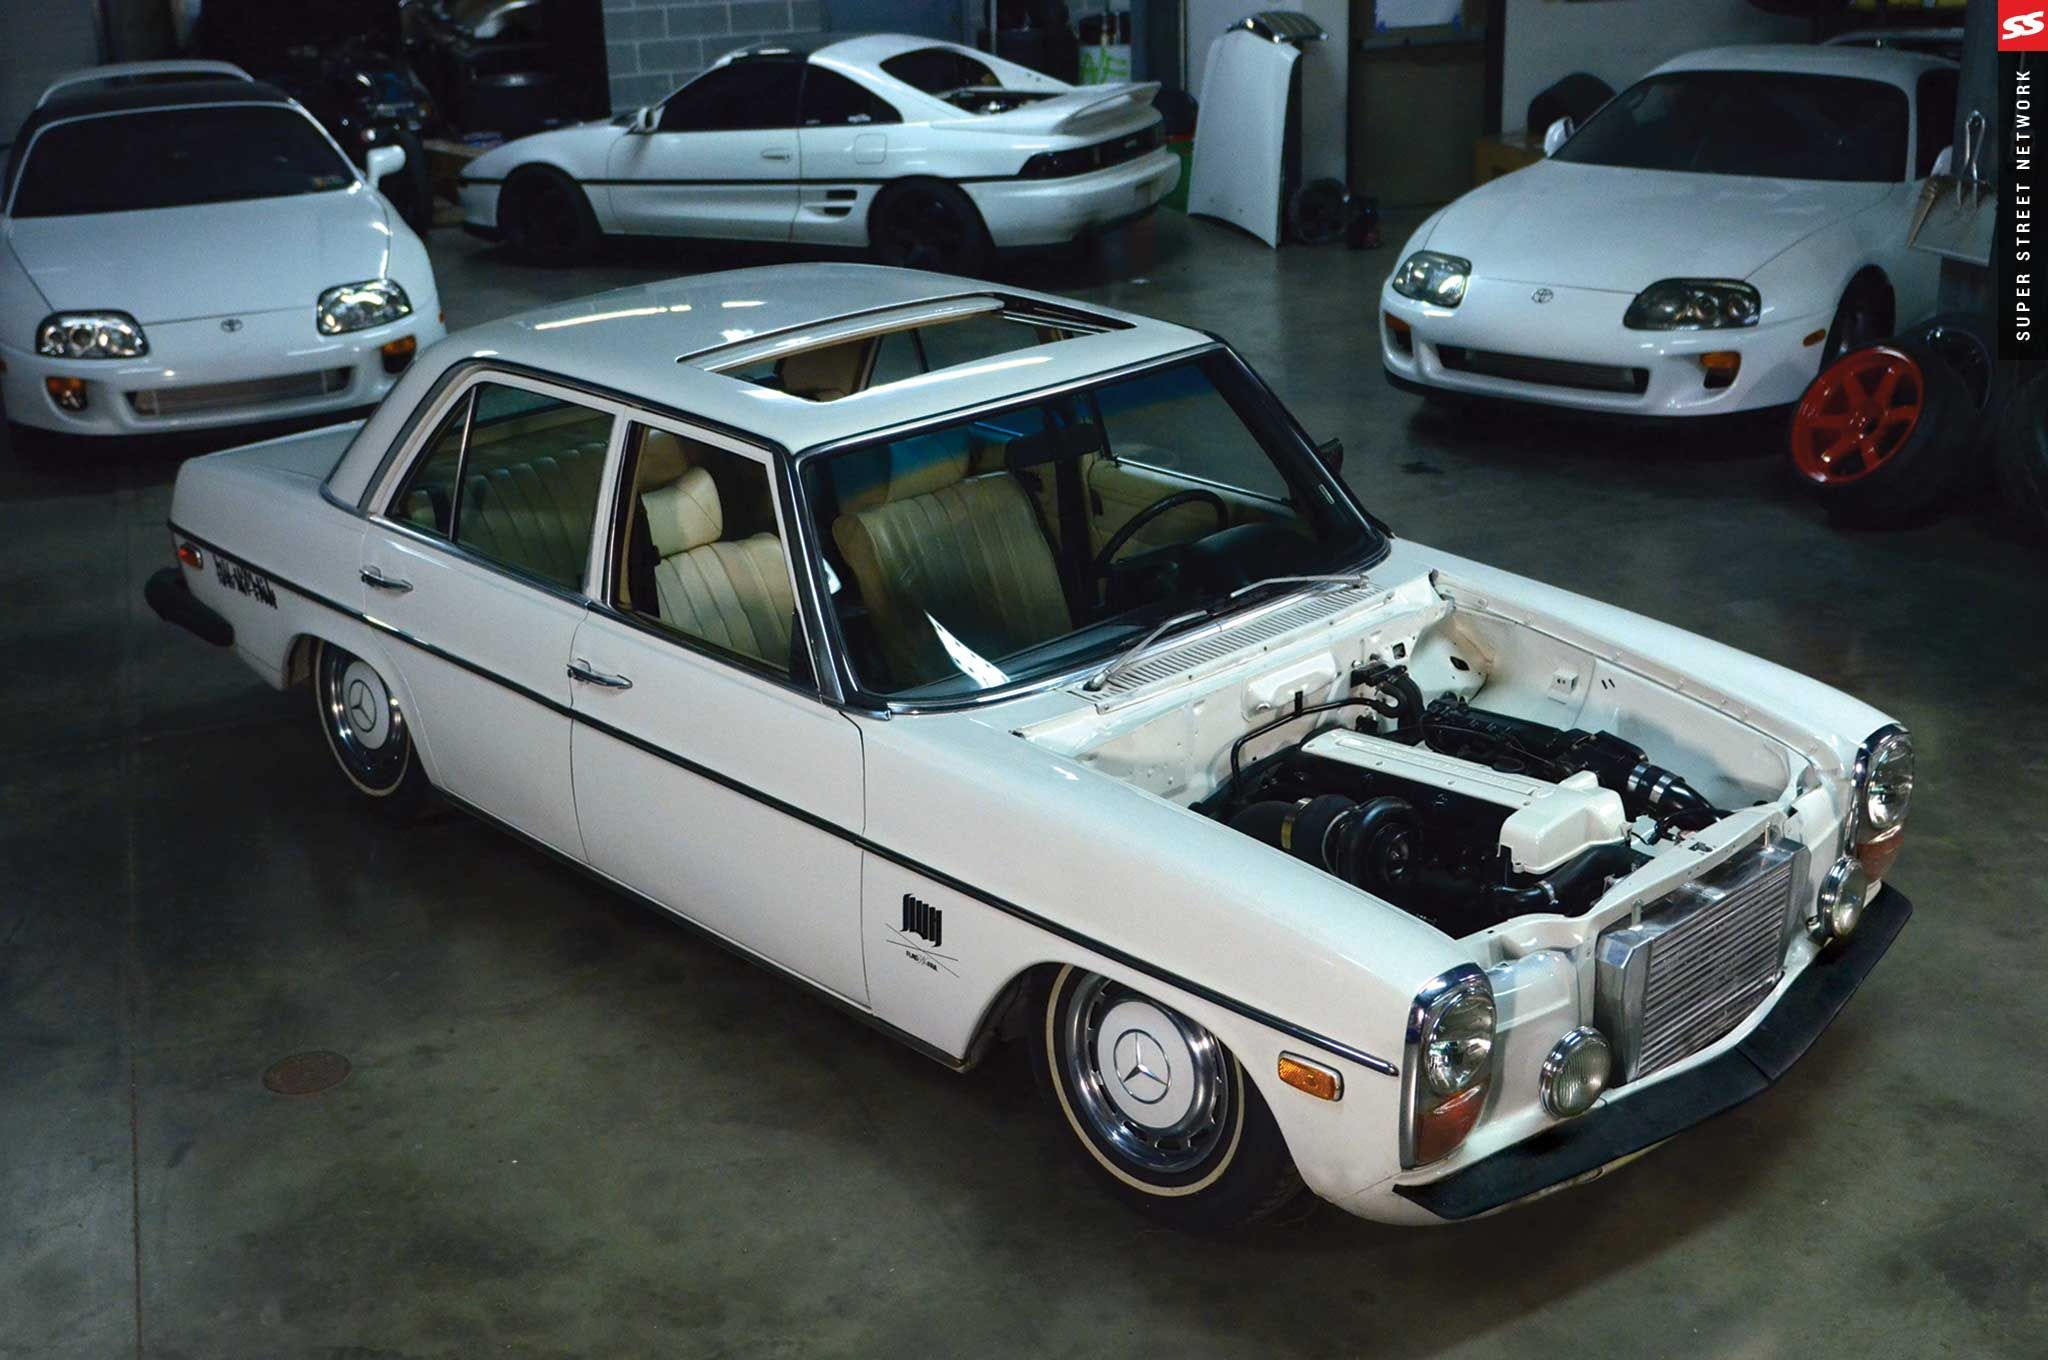 The holy grail of engine swaps a toyota supra 2jz engine swapped the holy grail of engine swaps a toyota supra 2jz engine swapped into a mercedes sciox Images